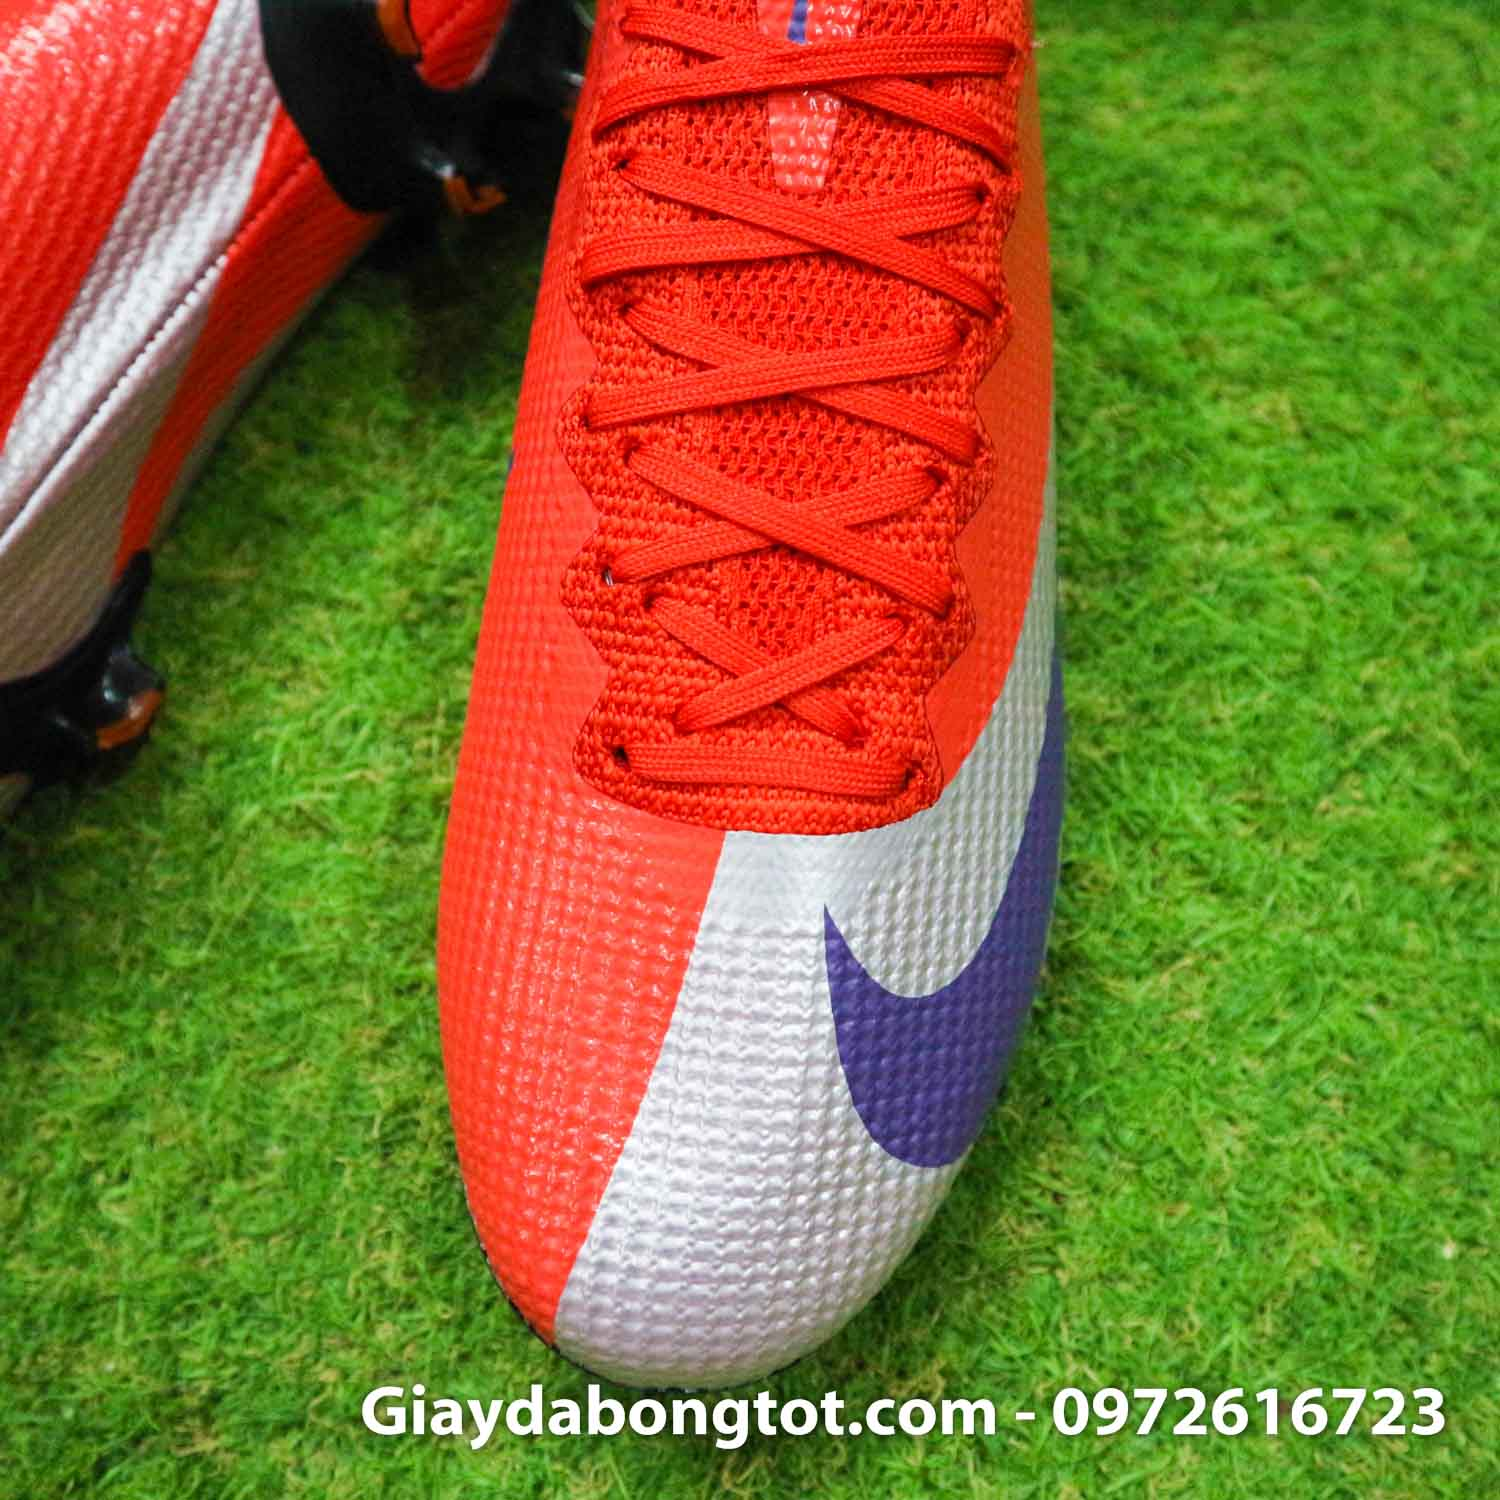 Giay bong da nike mercurial vapor 13 elite fg do bac future dna (7)